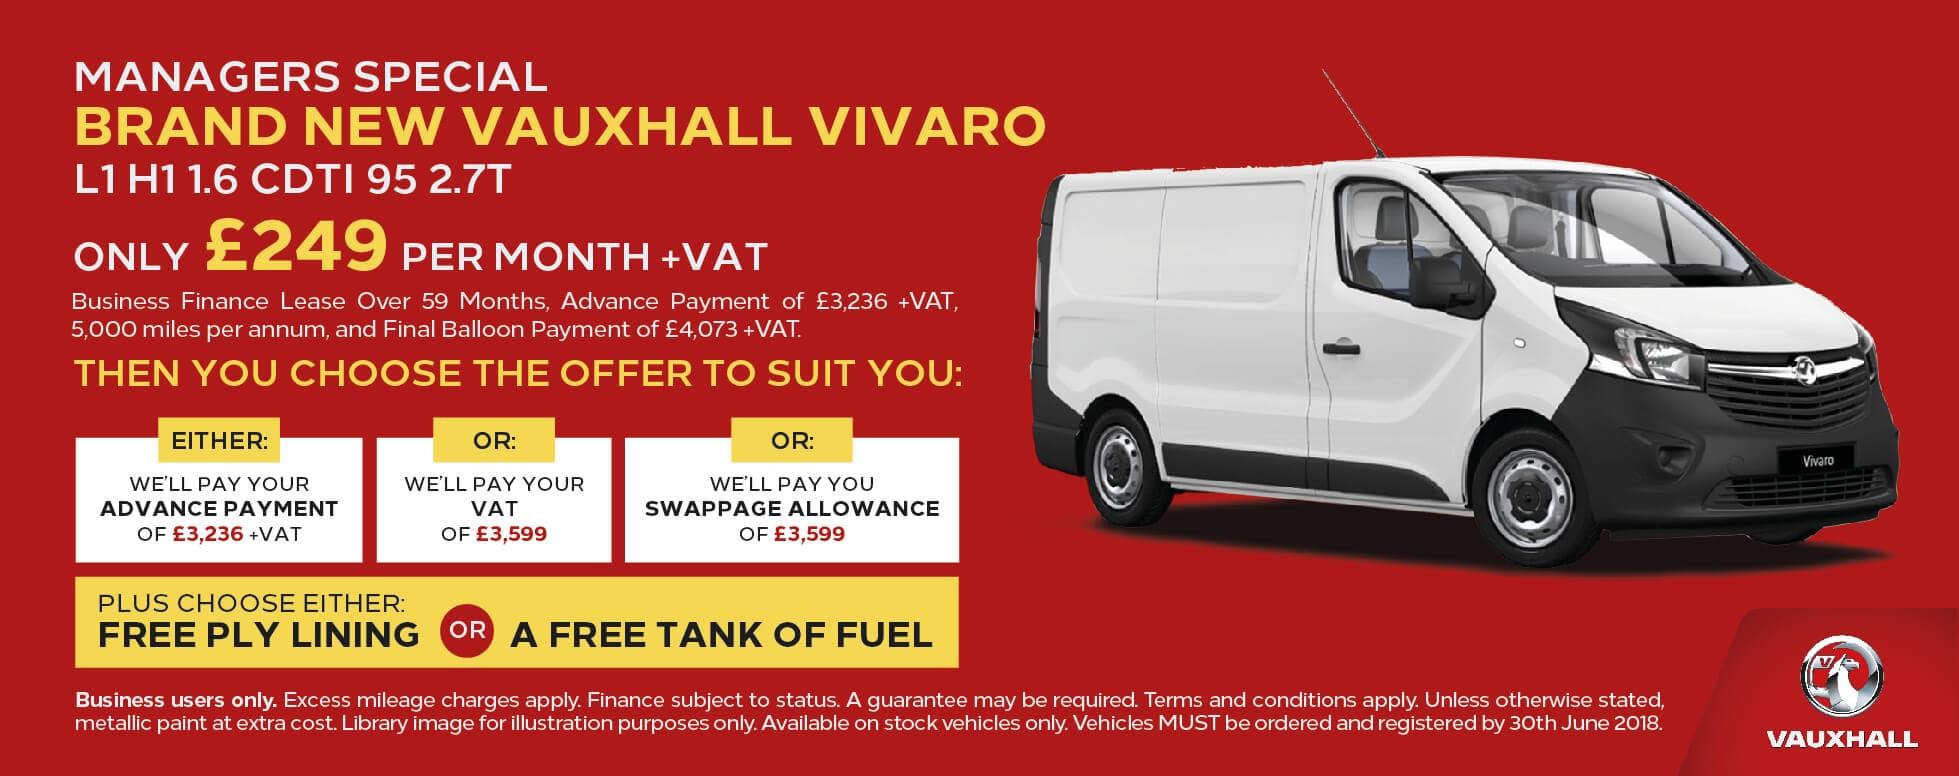 Manager Specials Vauxhall Vivaro BB